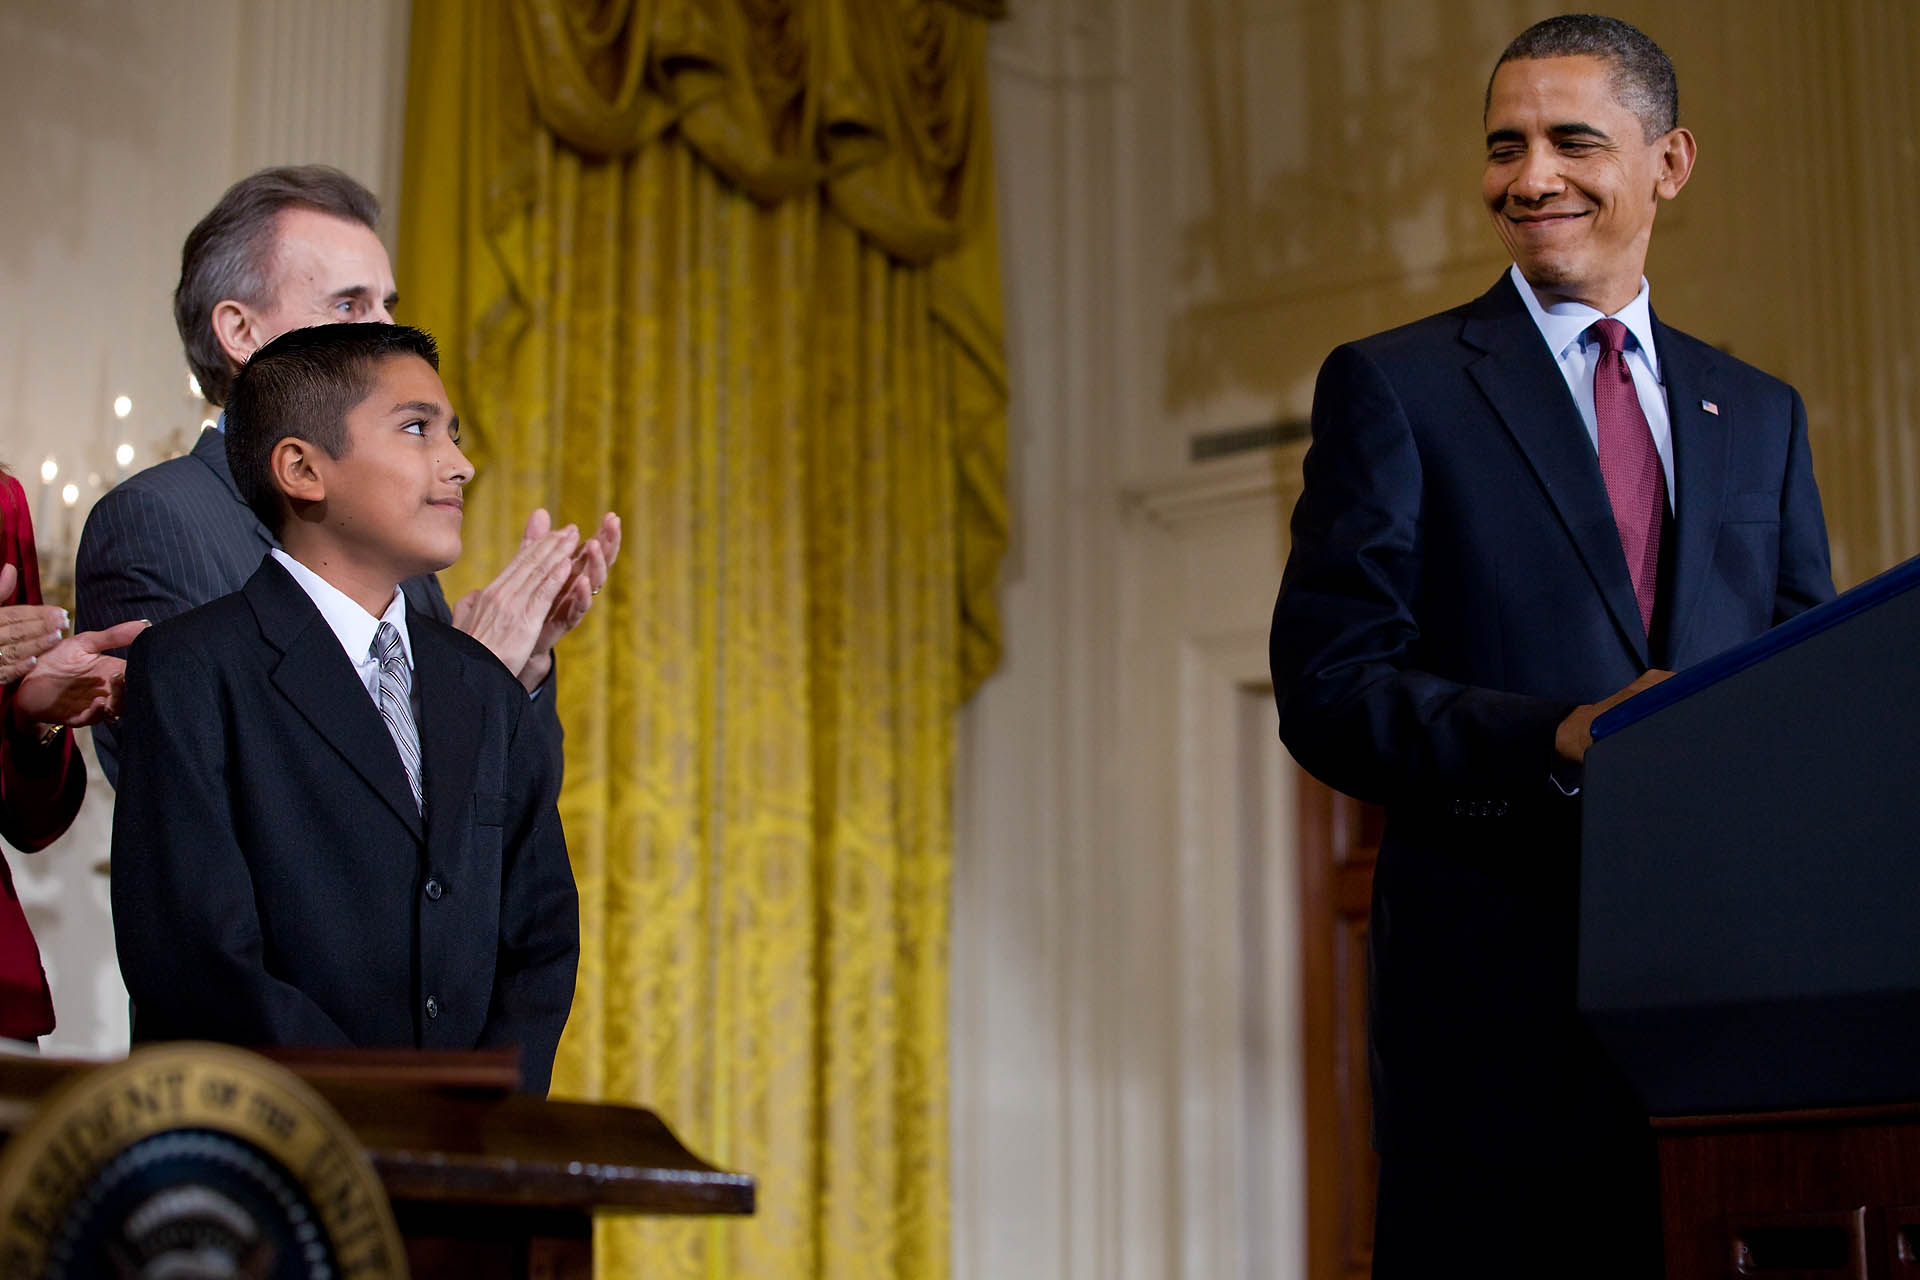 President Barack Obama Looks Over to Javier Garcia of Brownsville, Texas at Signing Ceremony for the Executive Order on Educational Excellence for Hispanic Americans